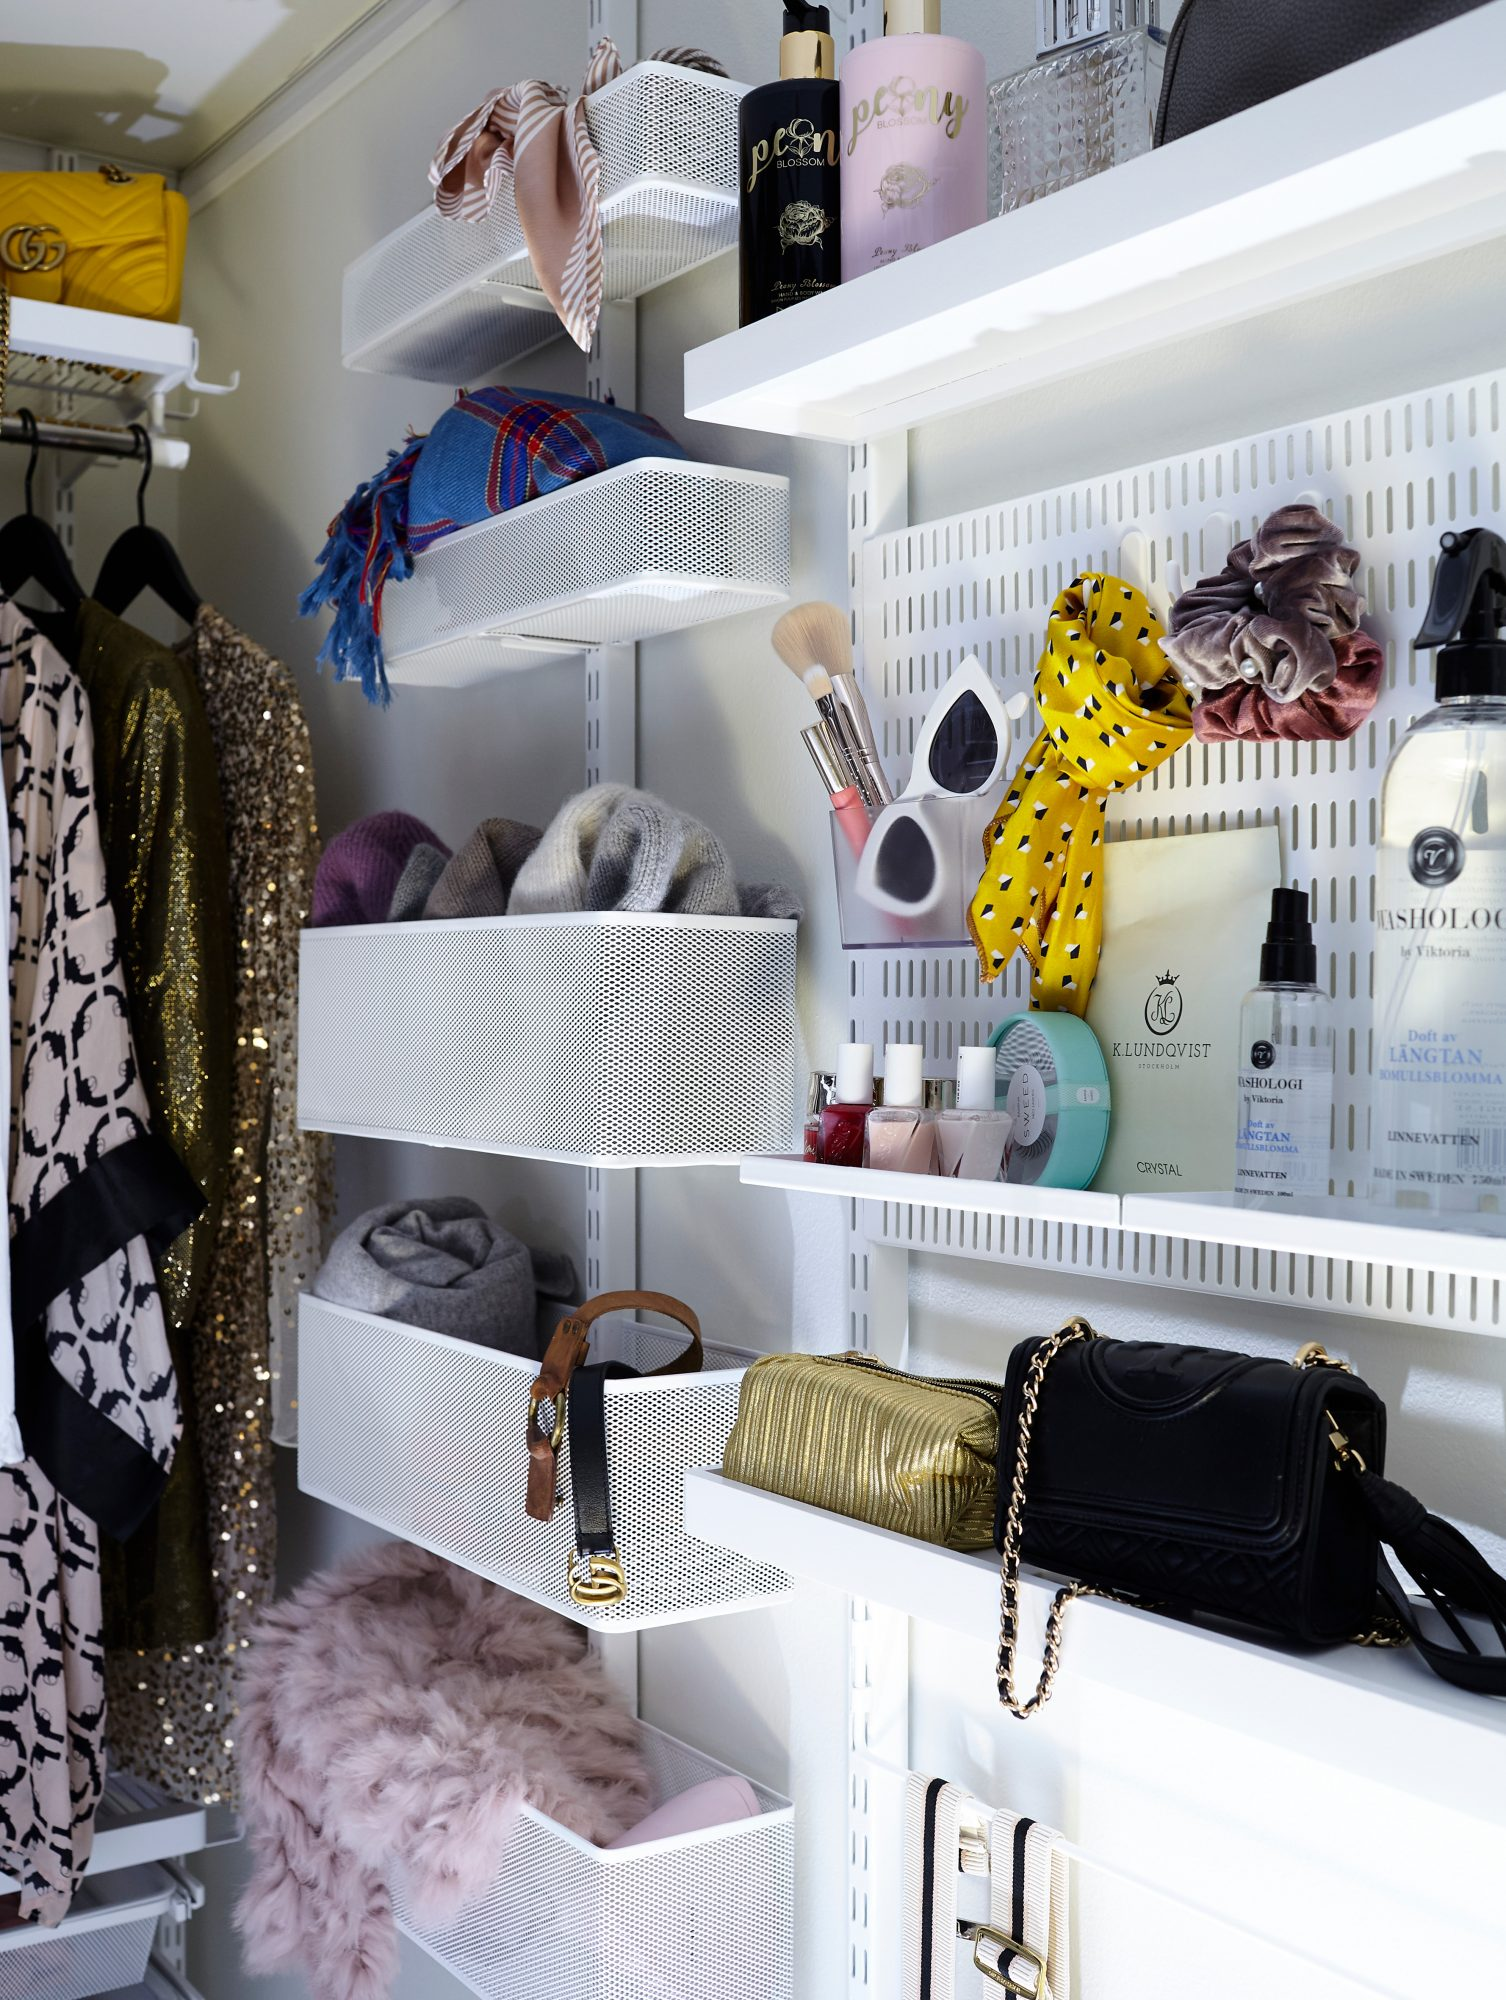 Elfa - Décor - Walk-in closet - Hannah Graaf